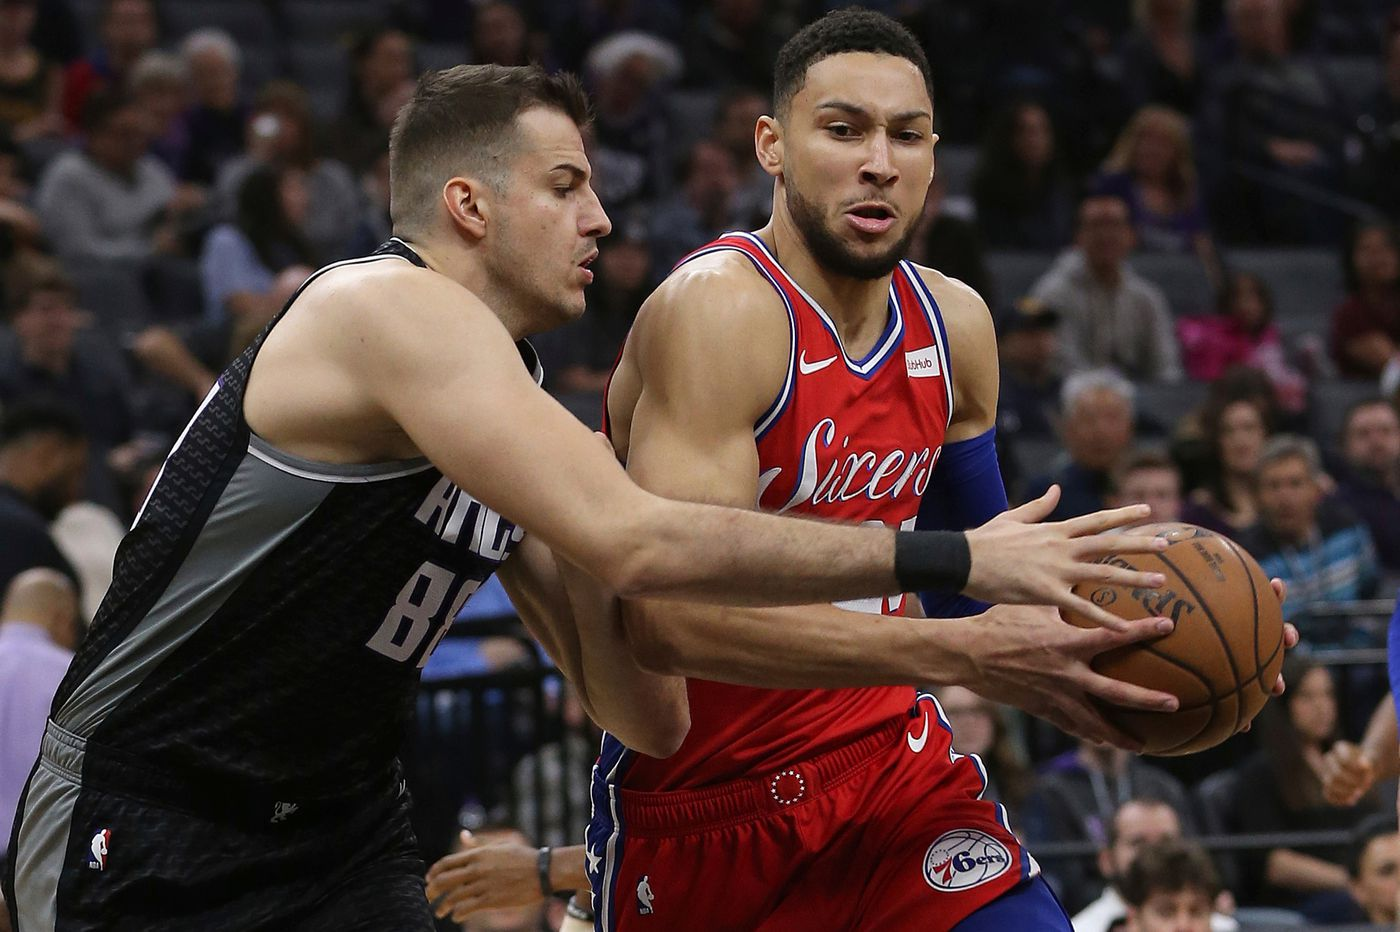 Sixers prepare for Kings squad that has given them trouble recently